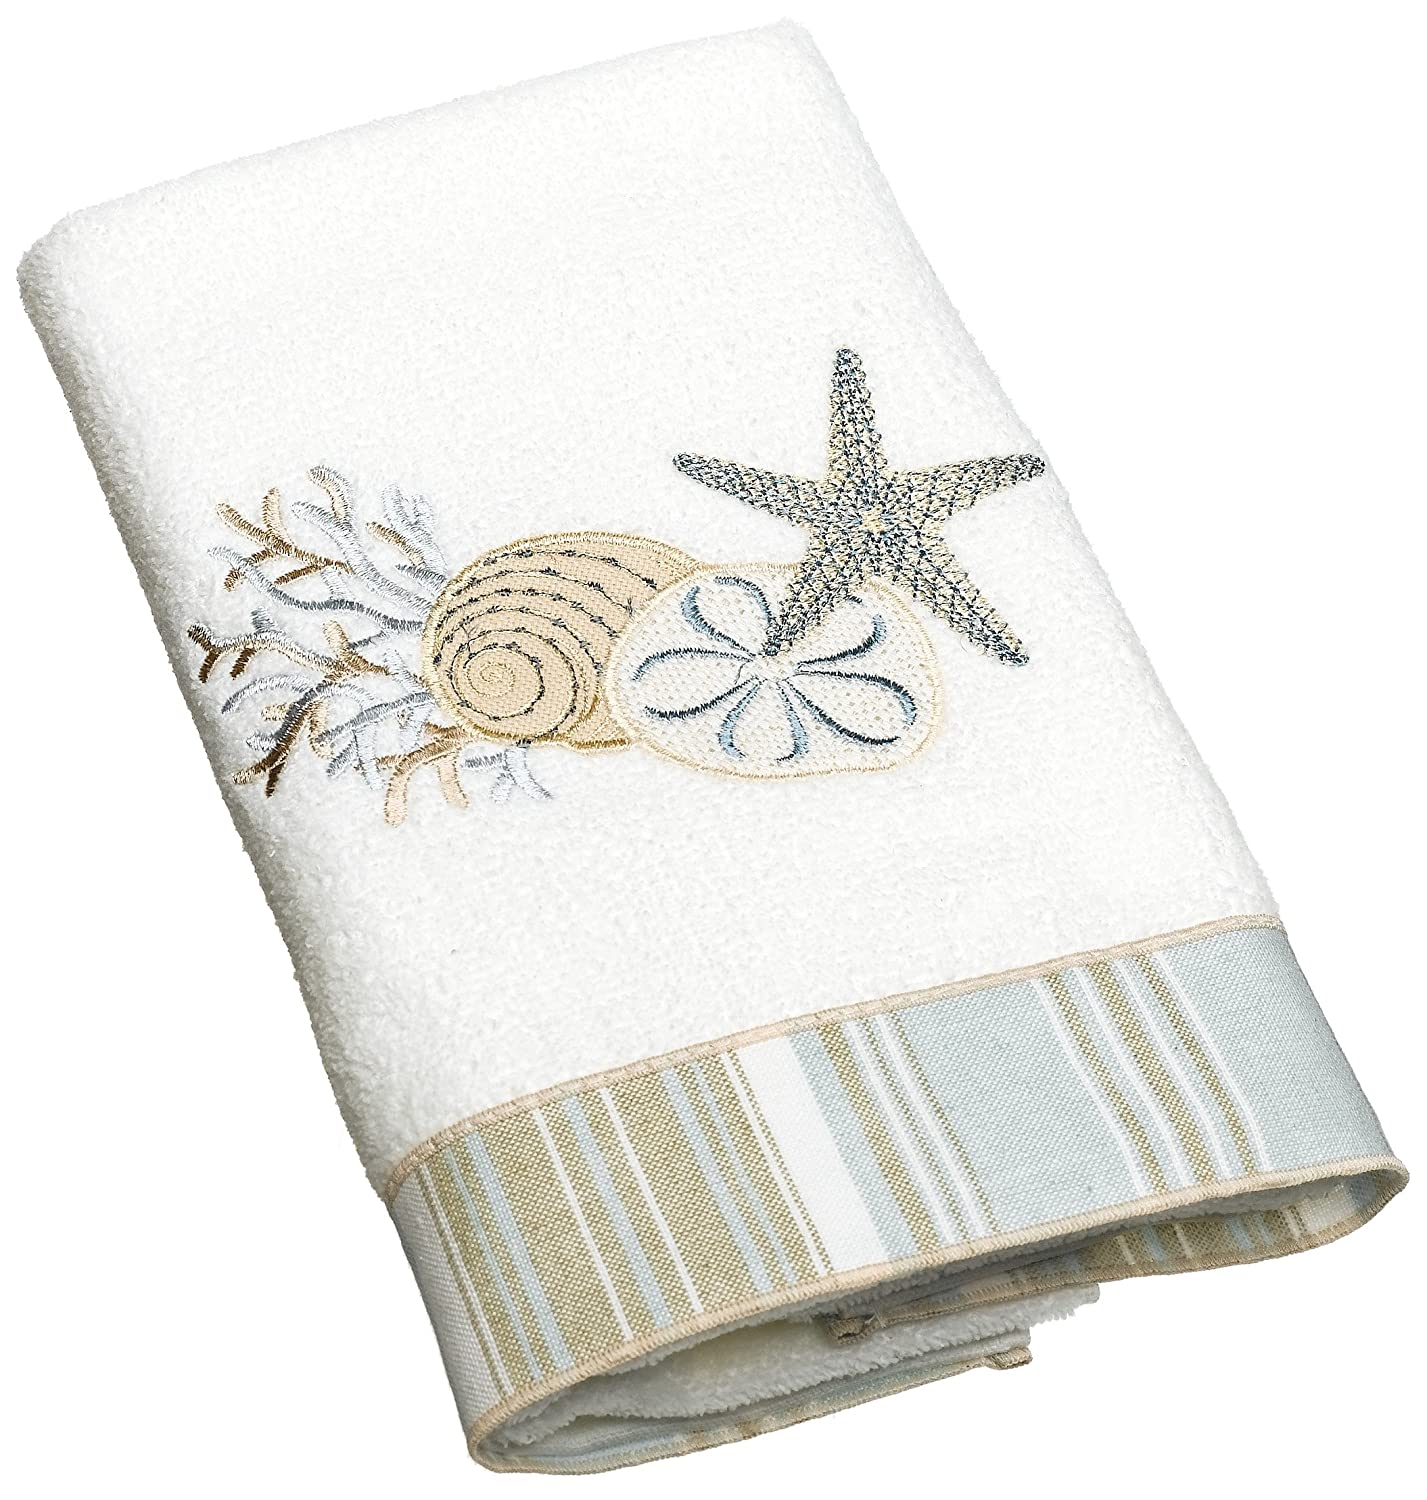 Avanti Decorative Towels Avanti Fingertip Towels In Ivory